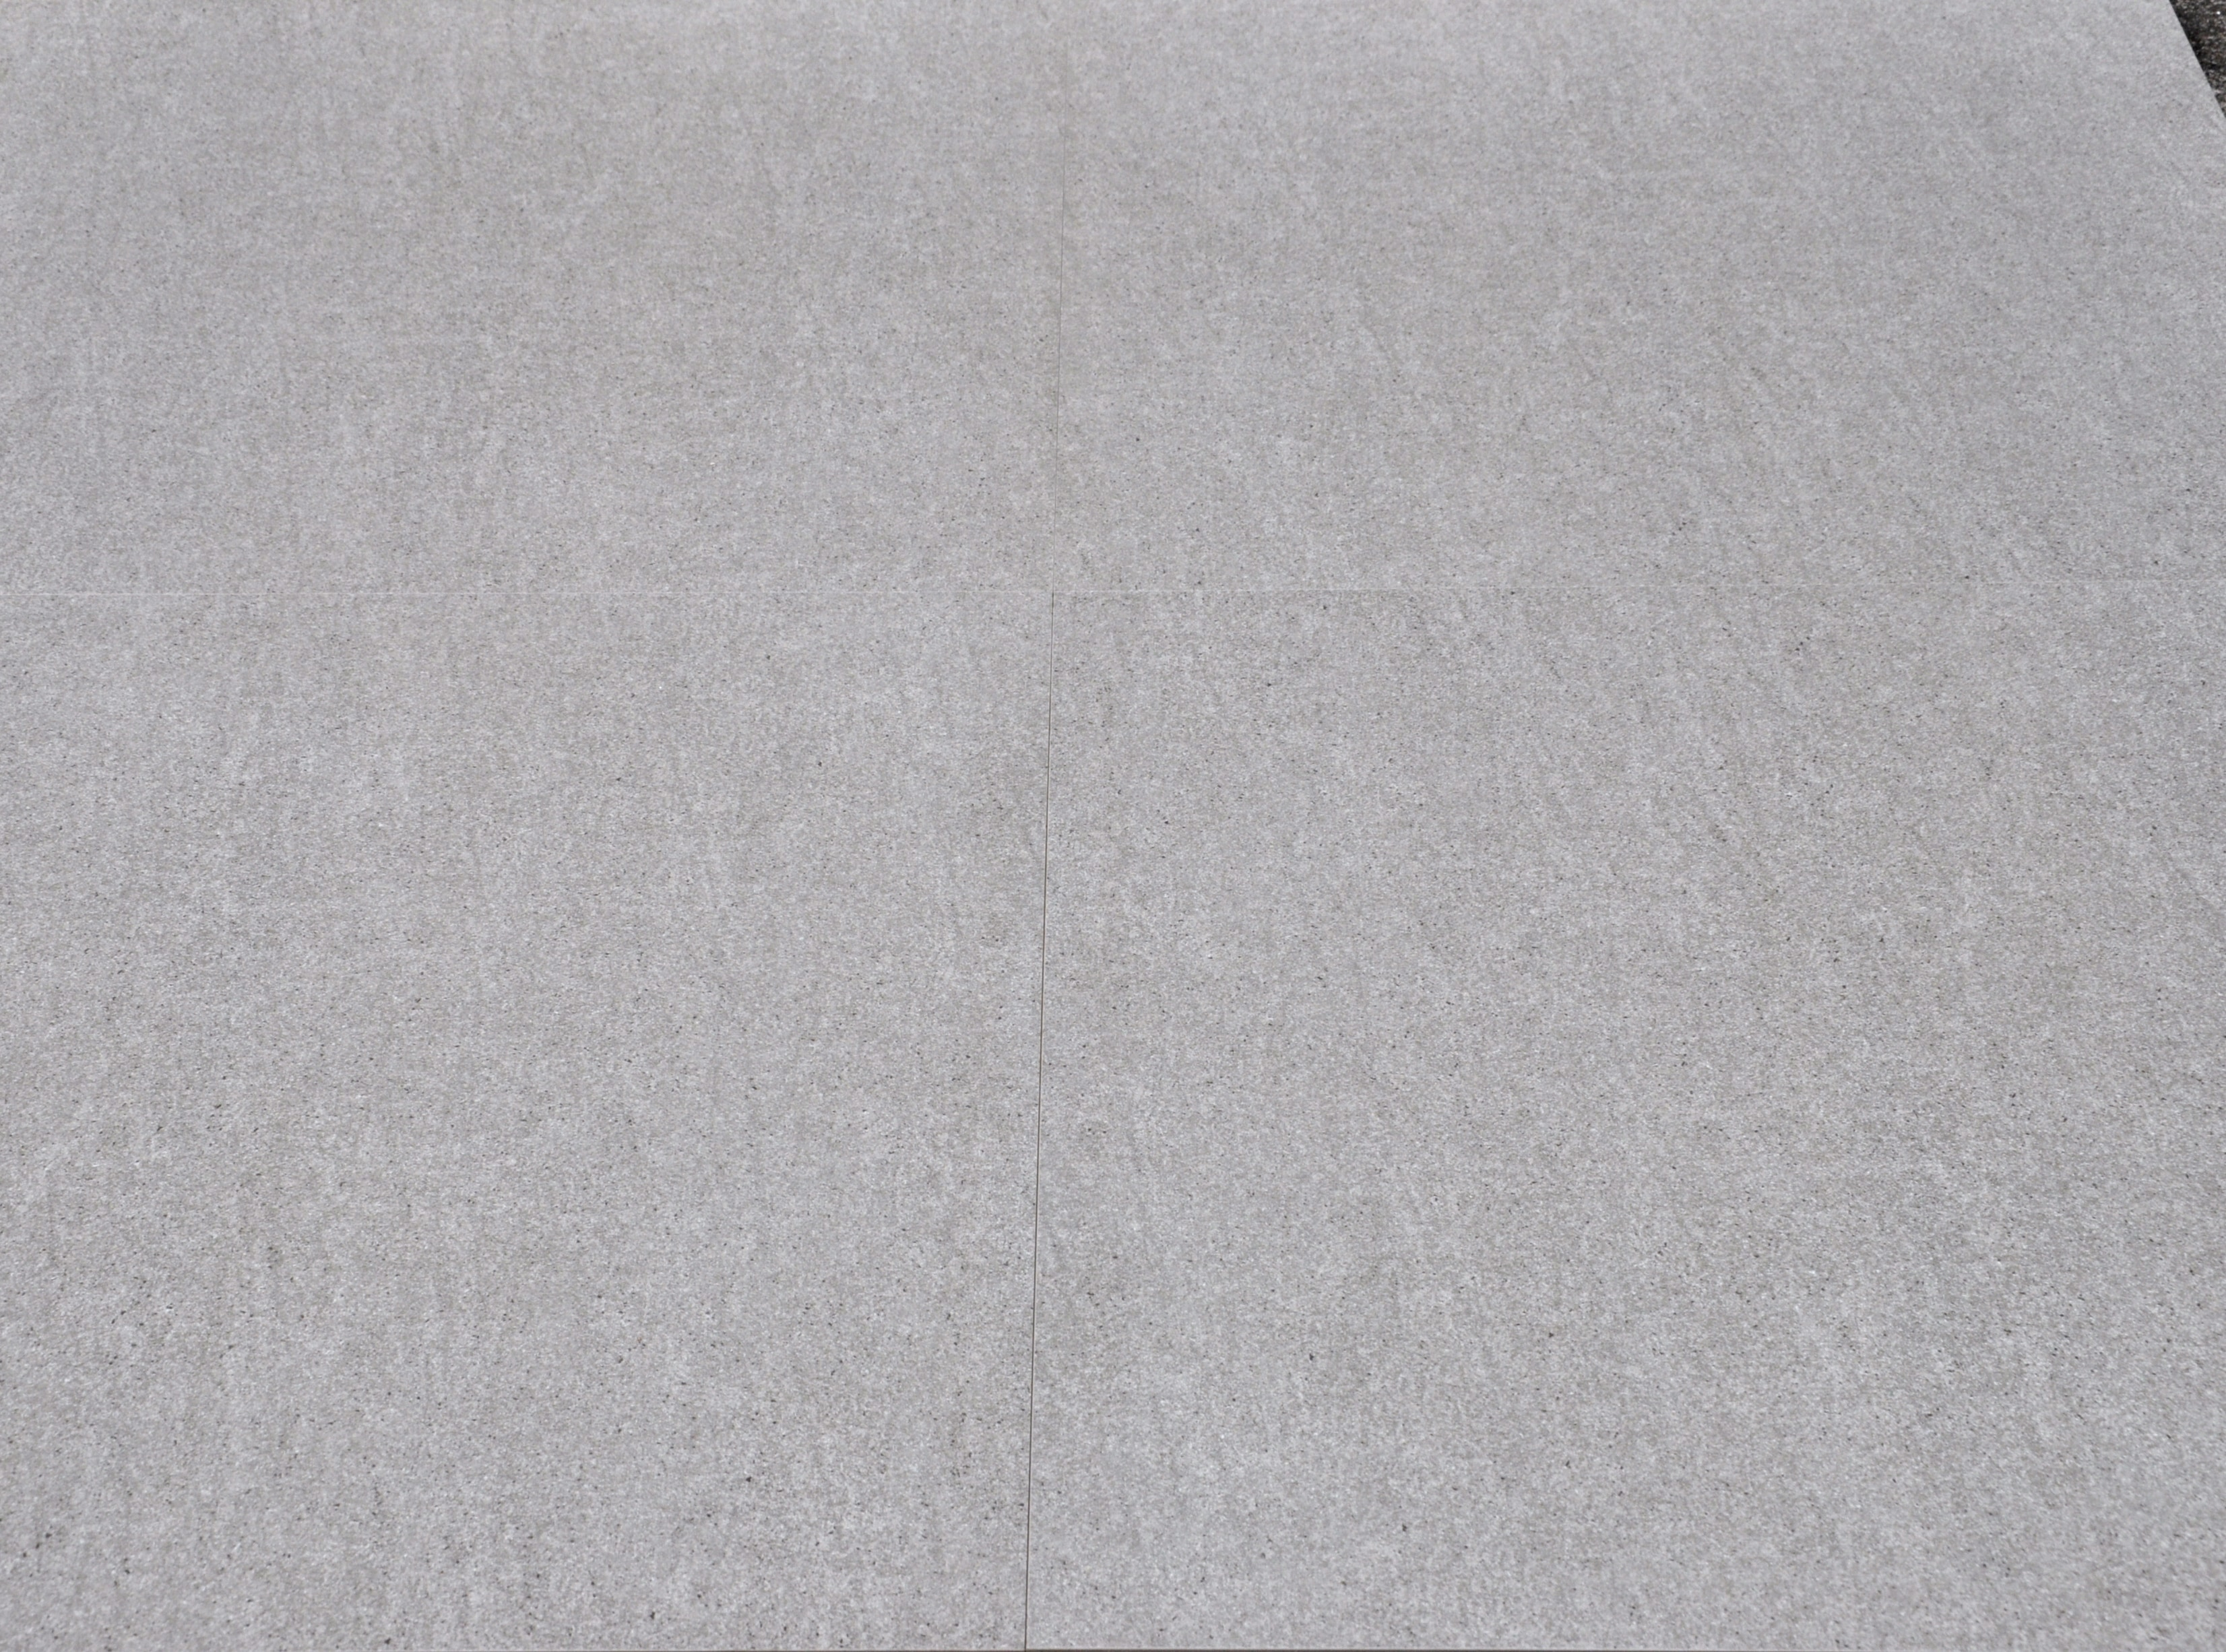 Salerno ceramic tile volcanic stone series grey 12x24 dailygadgetfo Image collections